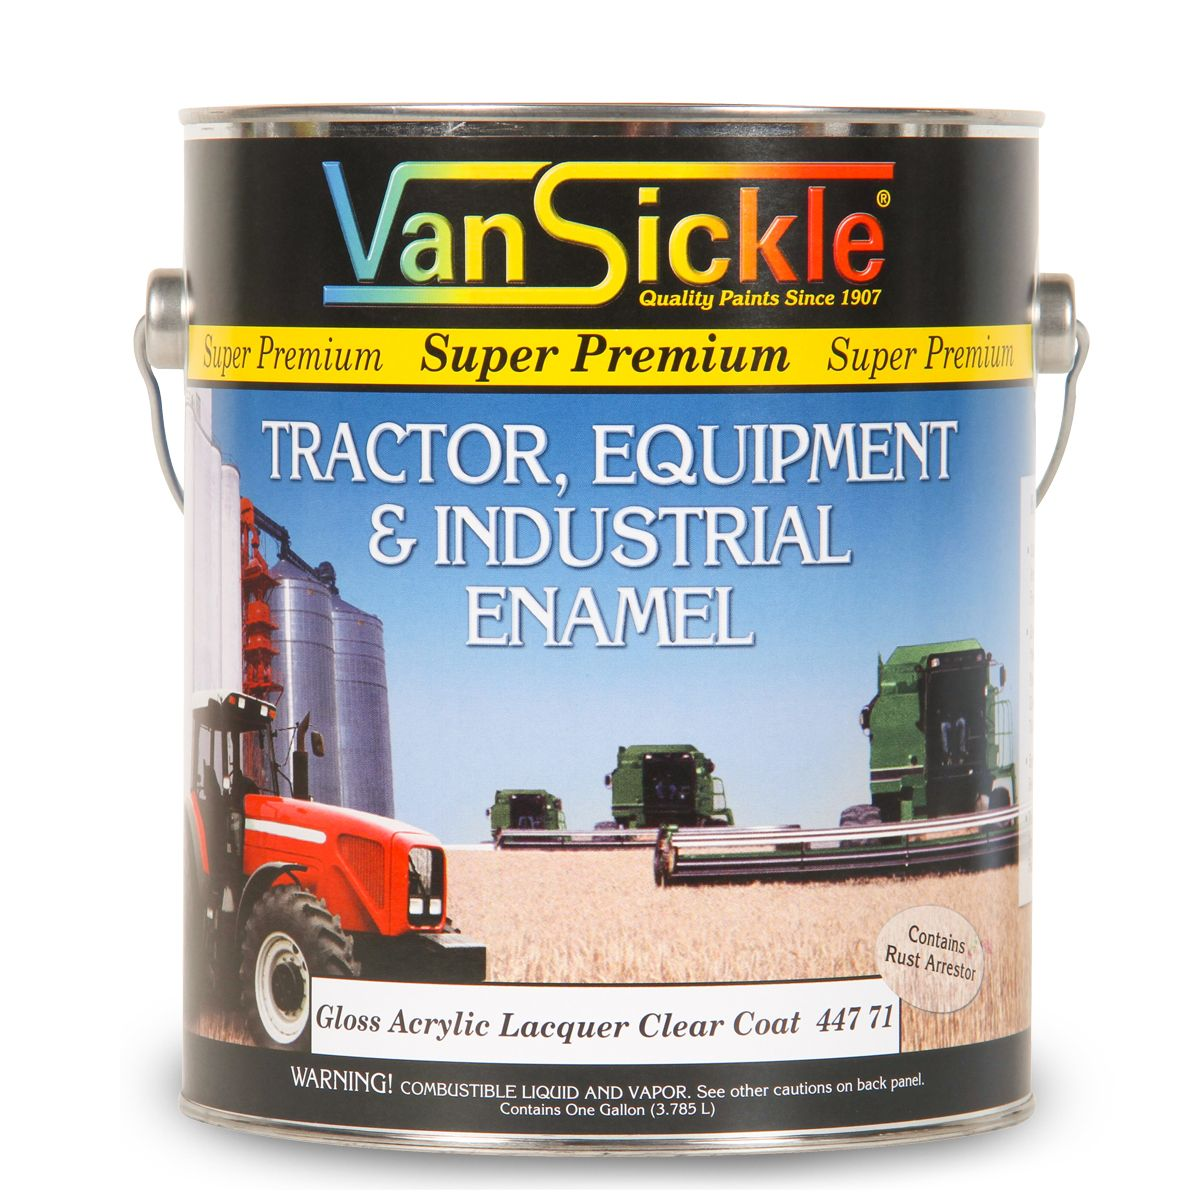 Van Sickle Interior Polyurethane Is A Super Premium Clear Coating That Is Great For Interior Wood Surfaces Like Trim Doors Interior Wood Surface Polyurethane